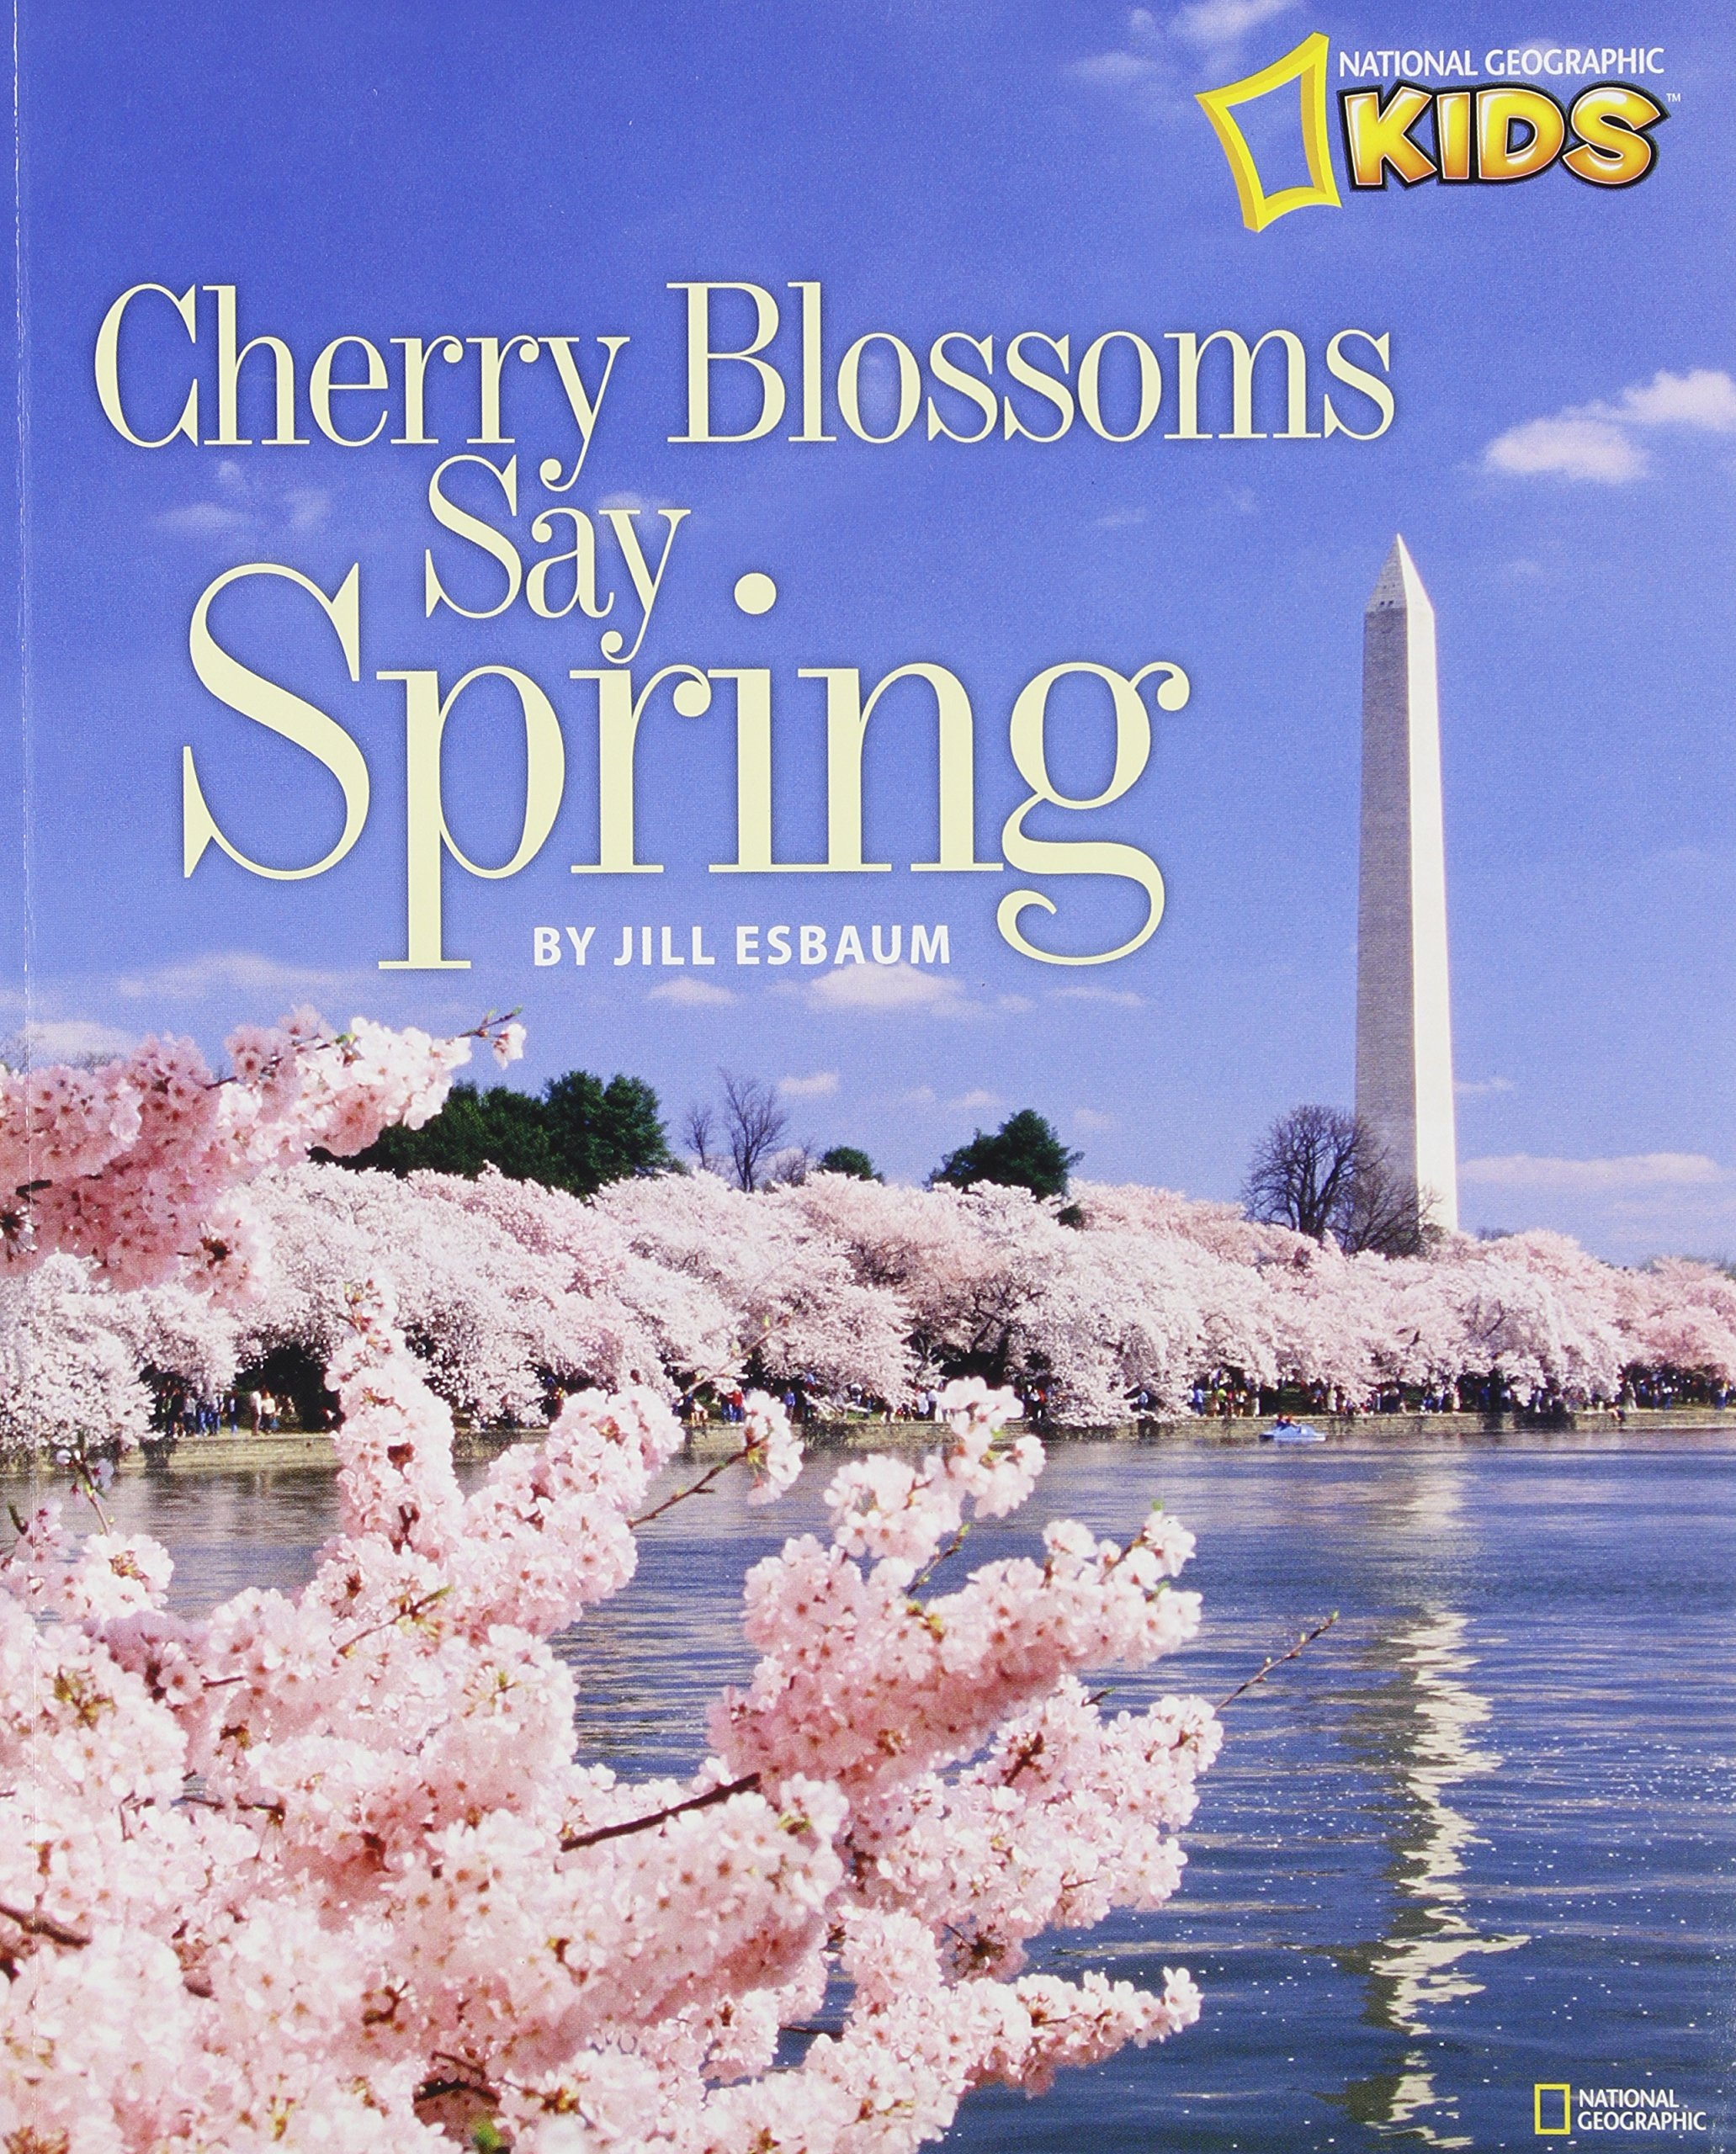 Cherry Blossoms Say Spring (National Geographic Kids)